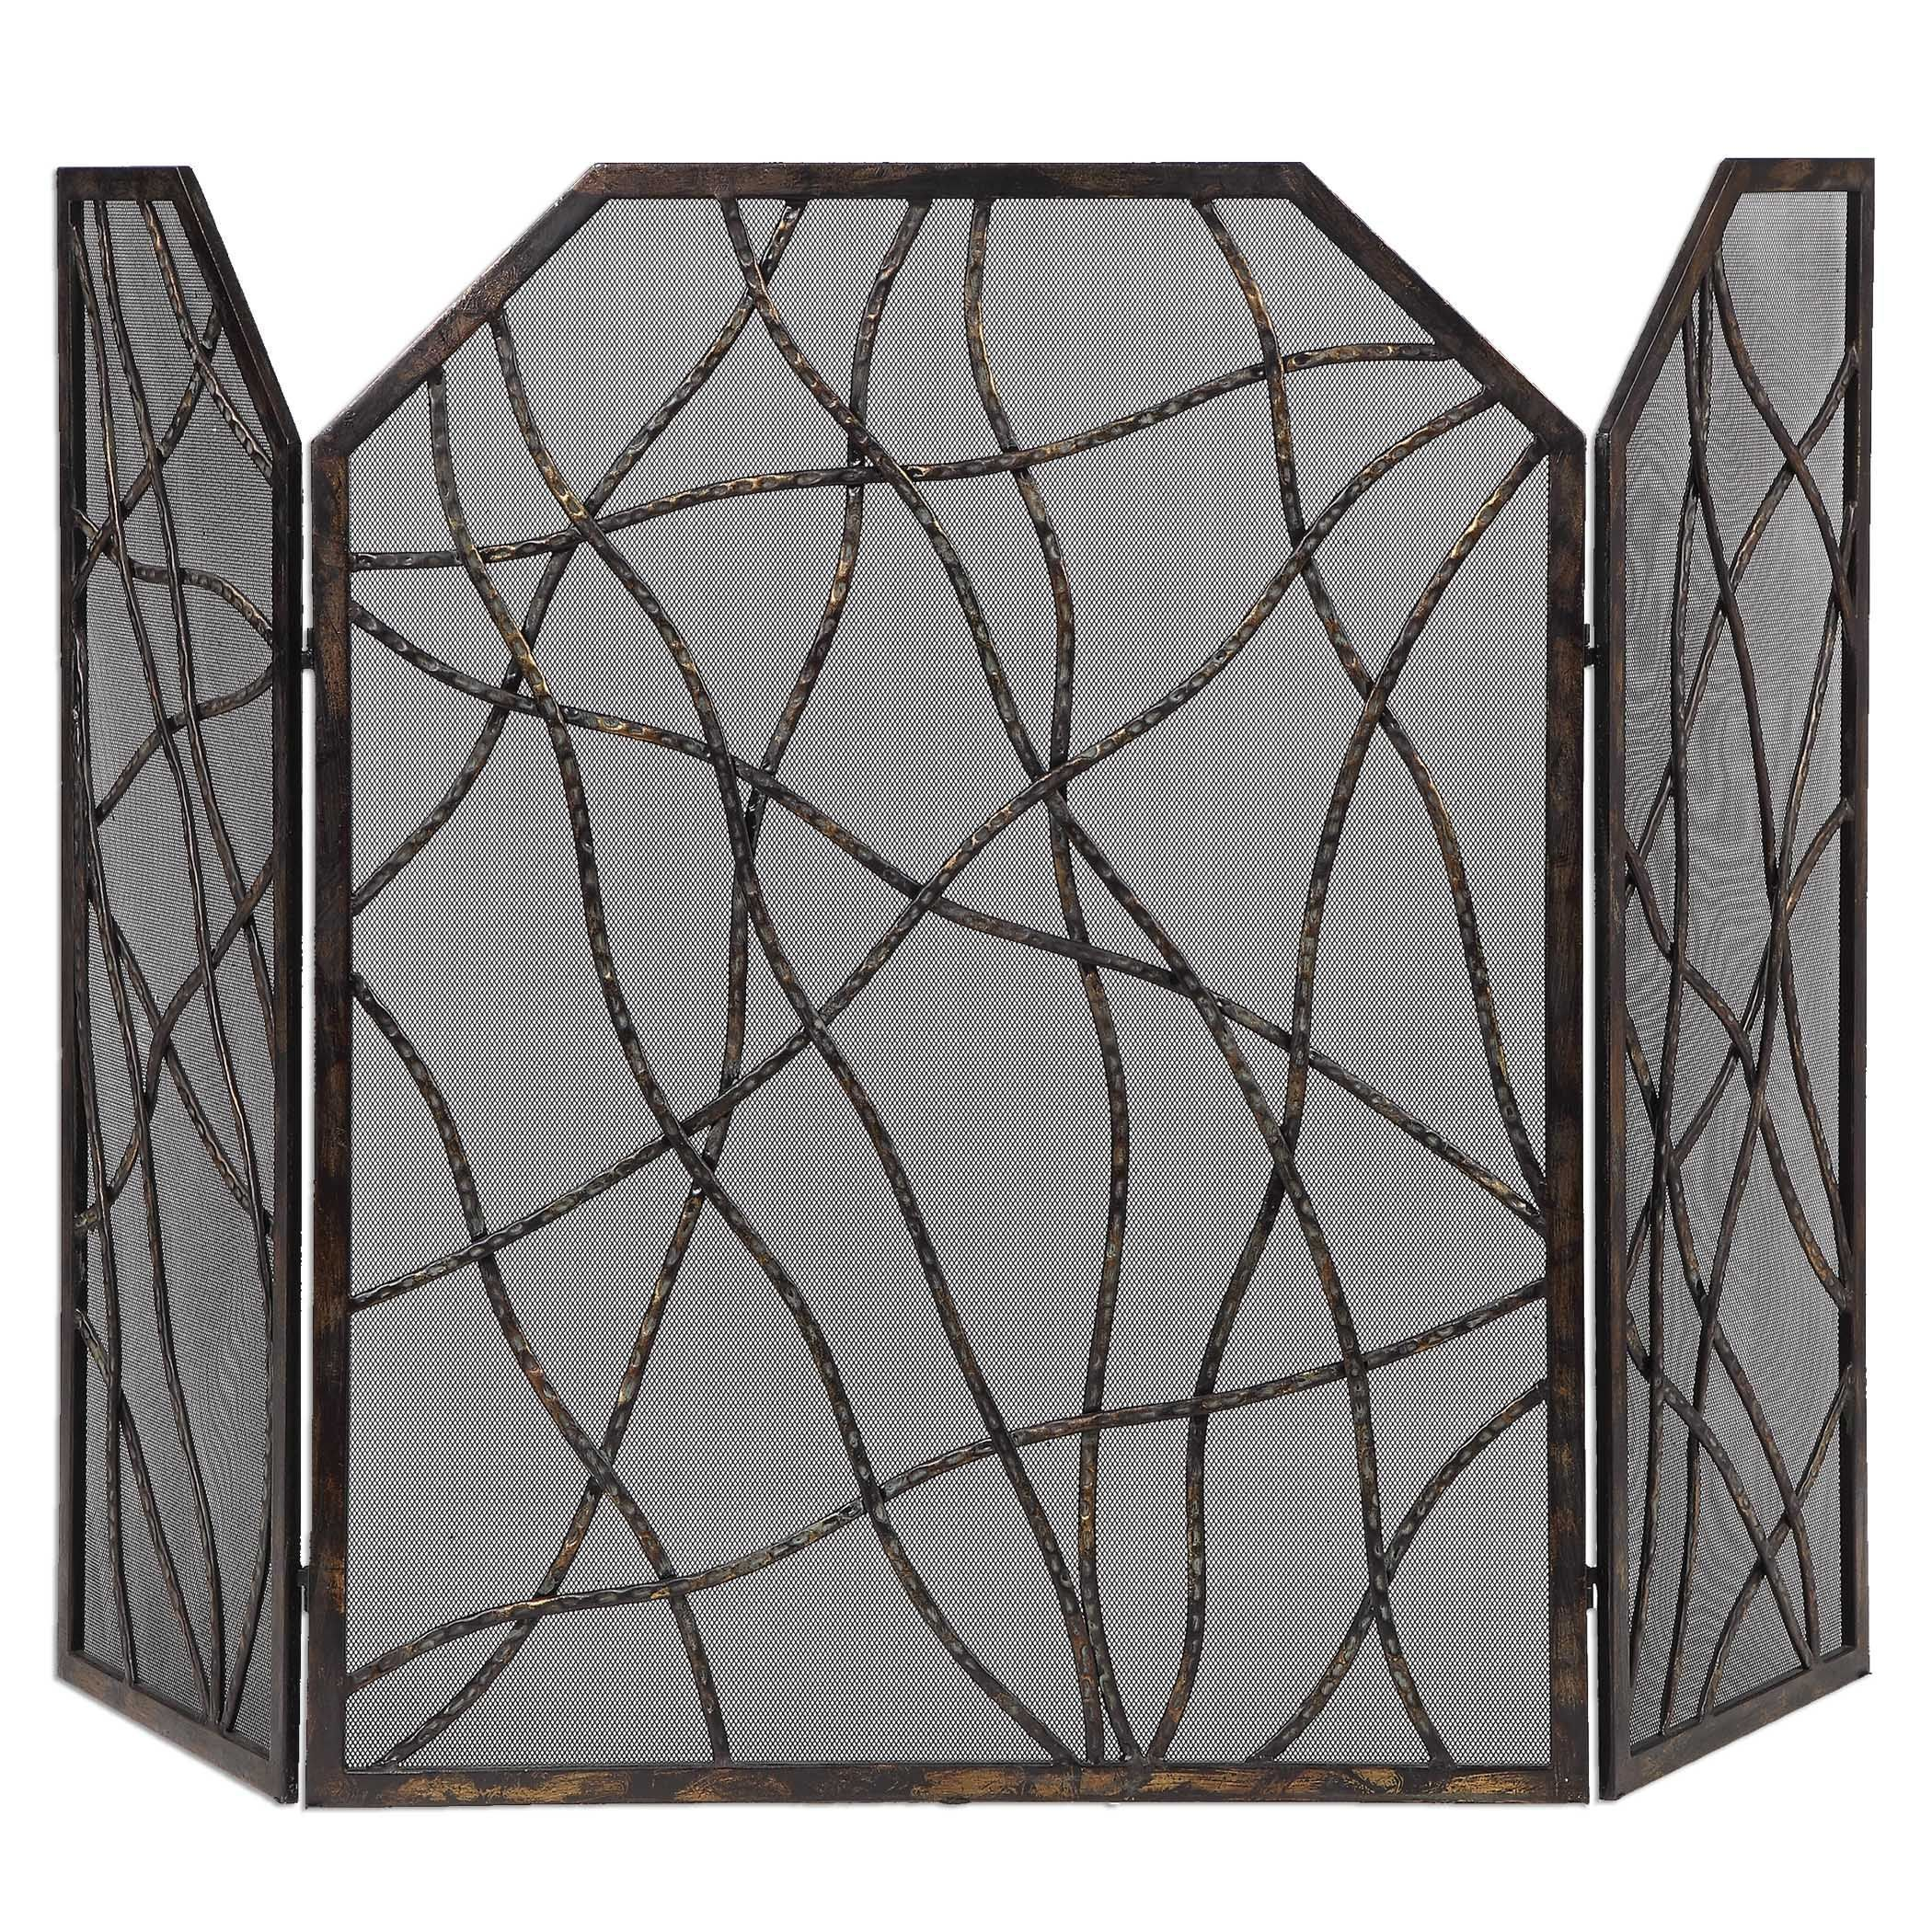 Pilgrim Fireplace Screens Elegant Uttermost Dorigrass Fireplace Screen Want It